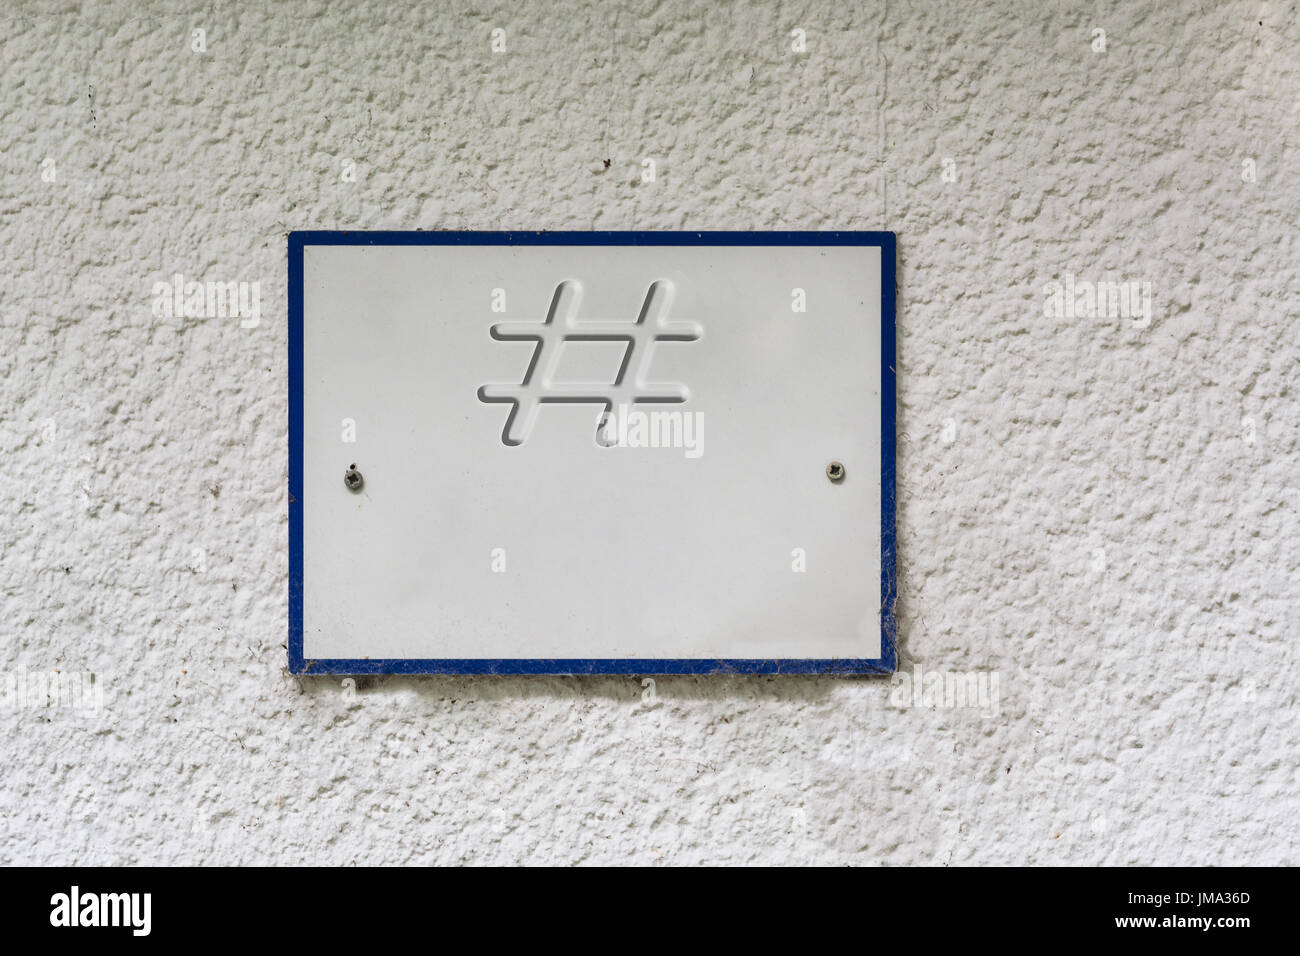 Information sign or board on a house wall with lettering # - Stock Image